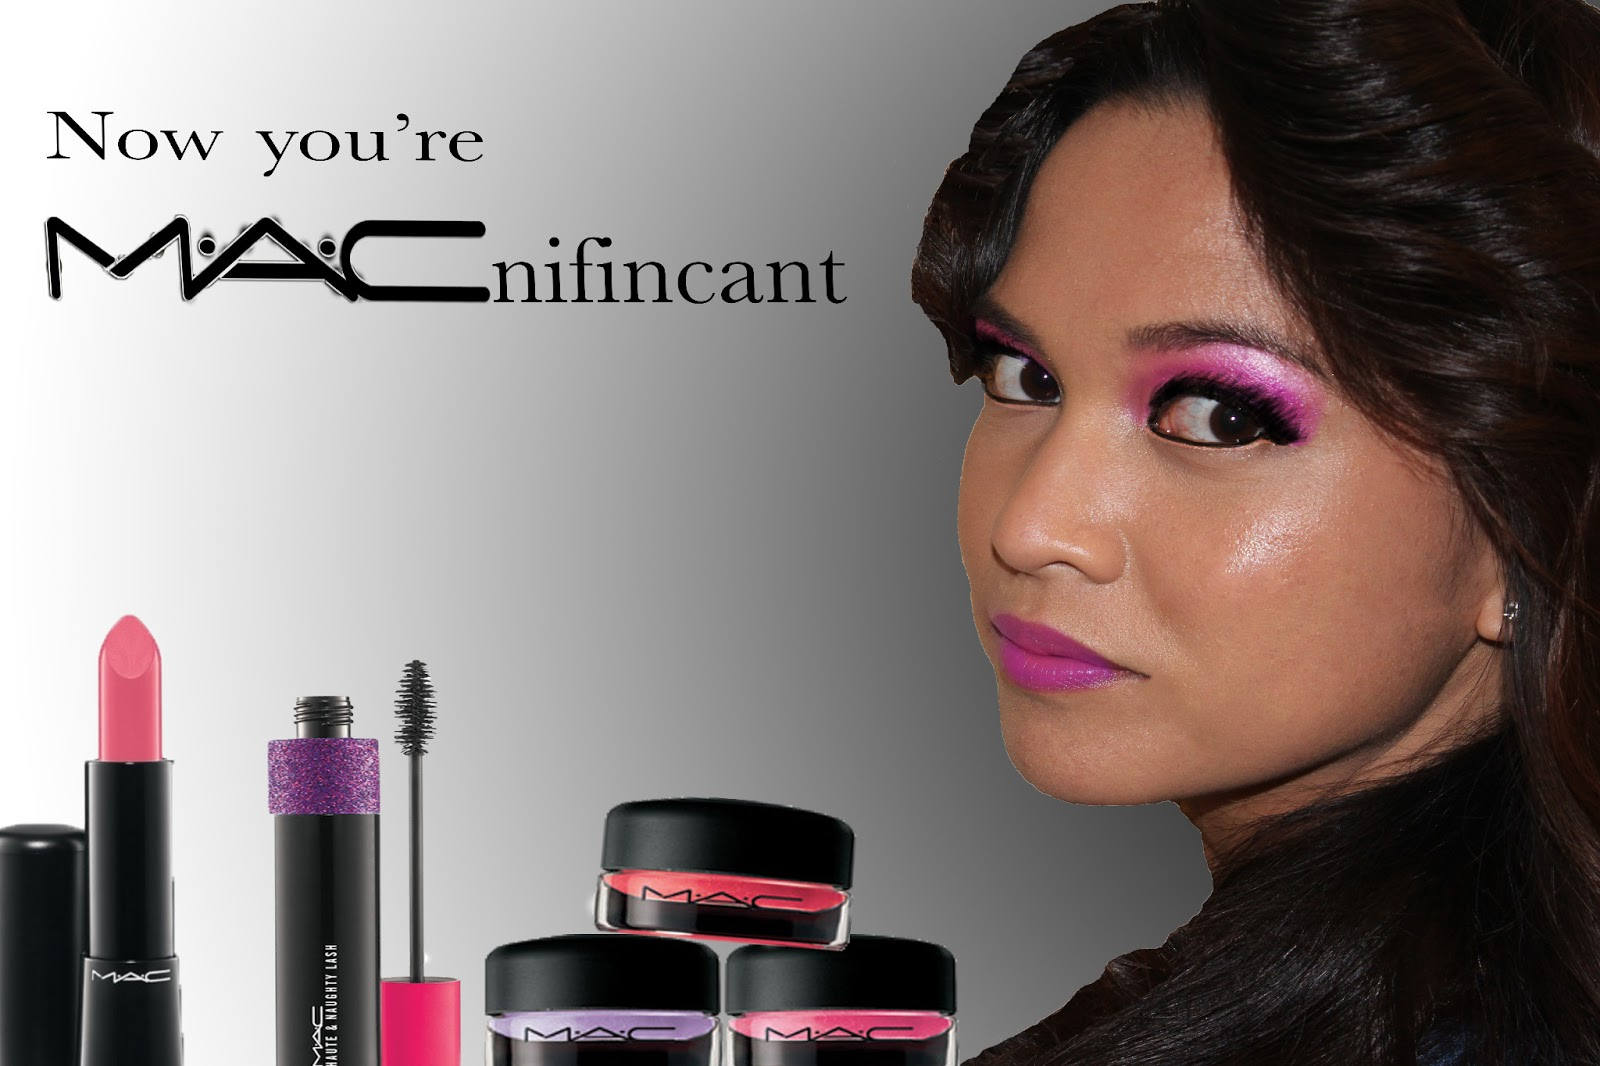 mac cosmetics analysis Mac cosmetics is a world renowned cosmetics company the company's unique and well known brand image has created a strong celebrity following  in addition, the brand receives a bast amount of the word of mouth endorsements from professional make up artists.